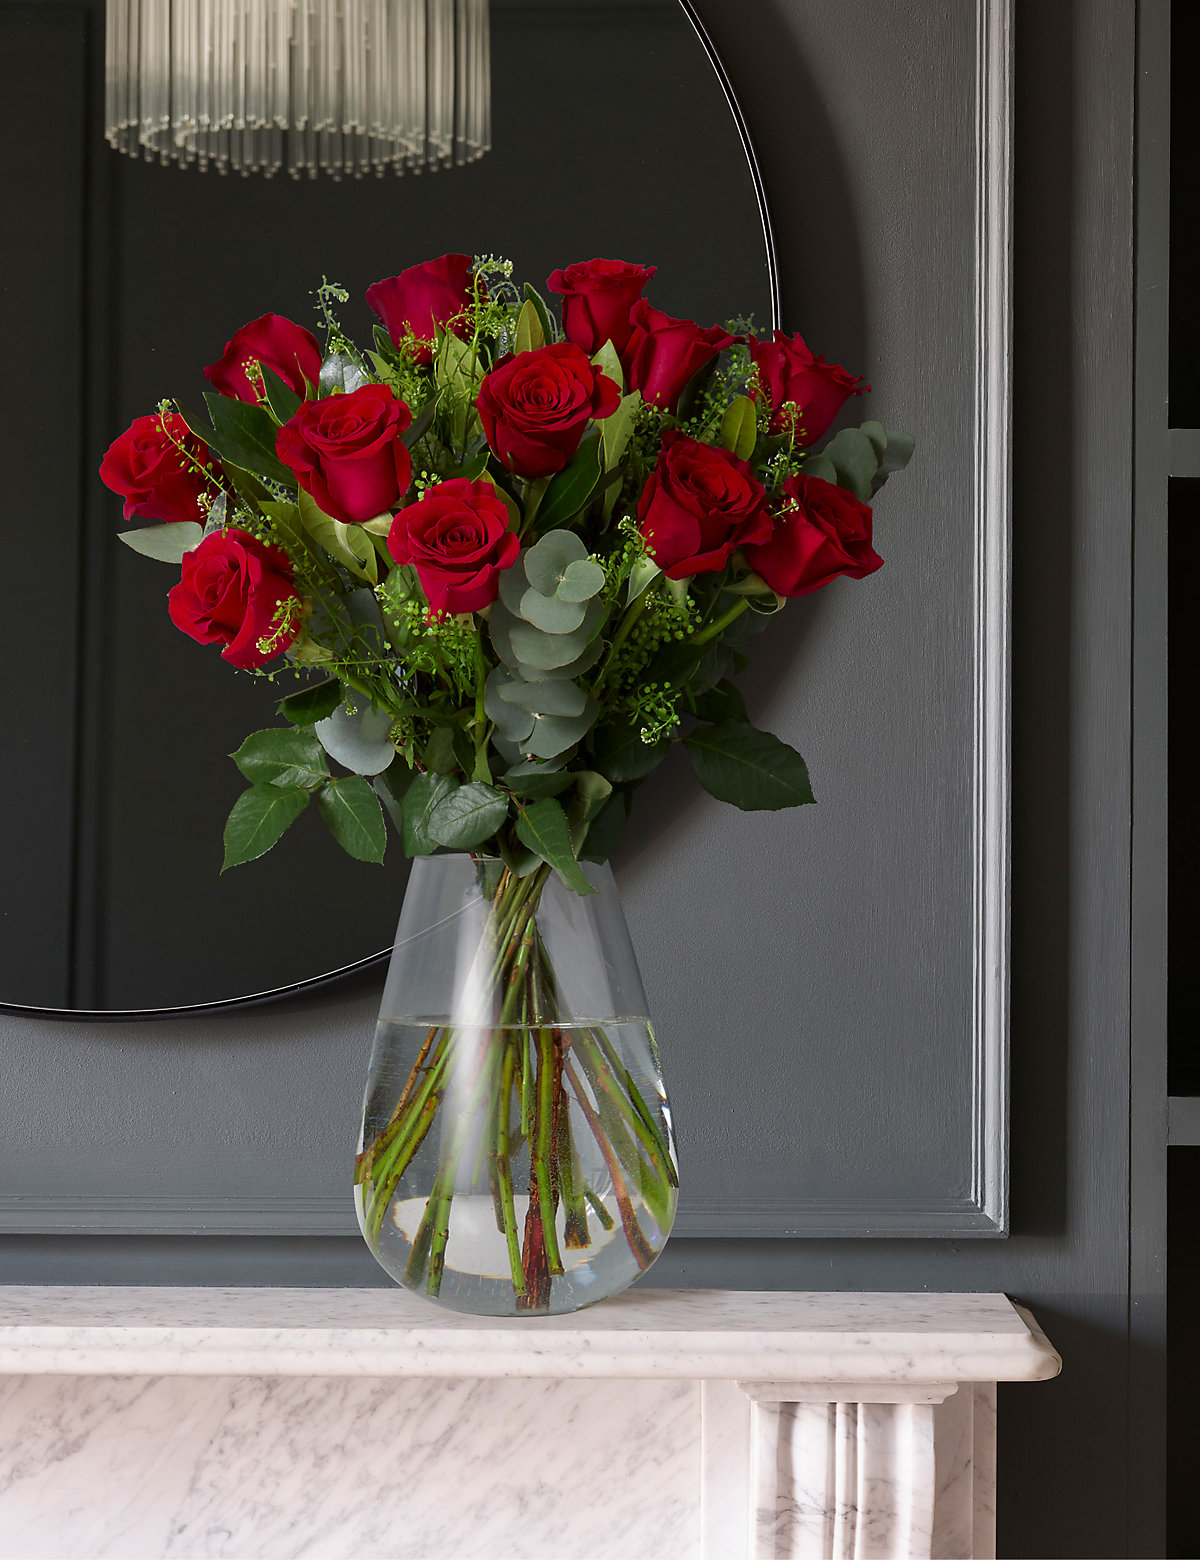 Autograph Freedom Roses